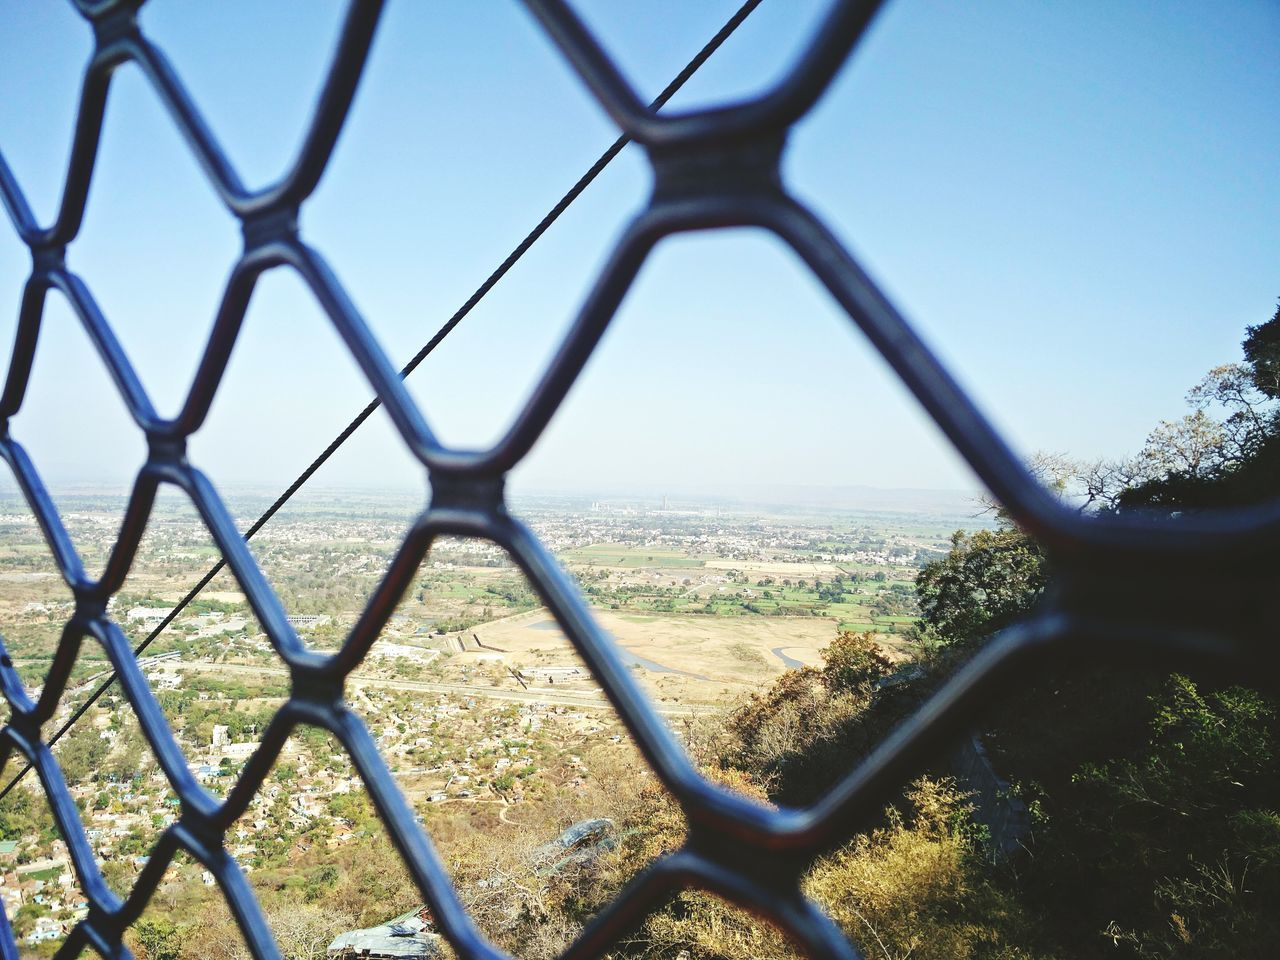 chainlink fence, day, landscape, no people, airplane, sky, clear sky, outdoors, nature, tree, close-up